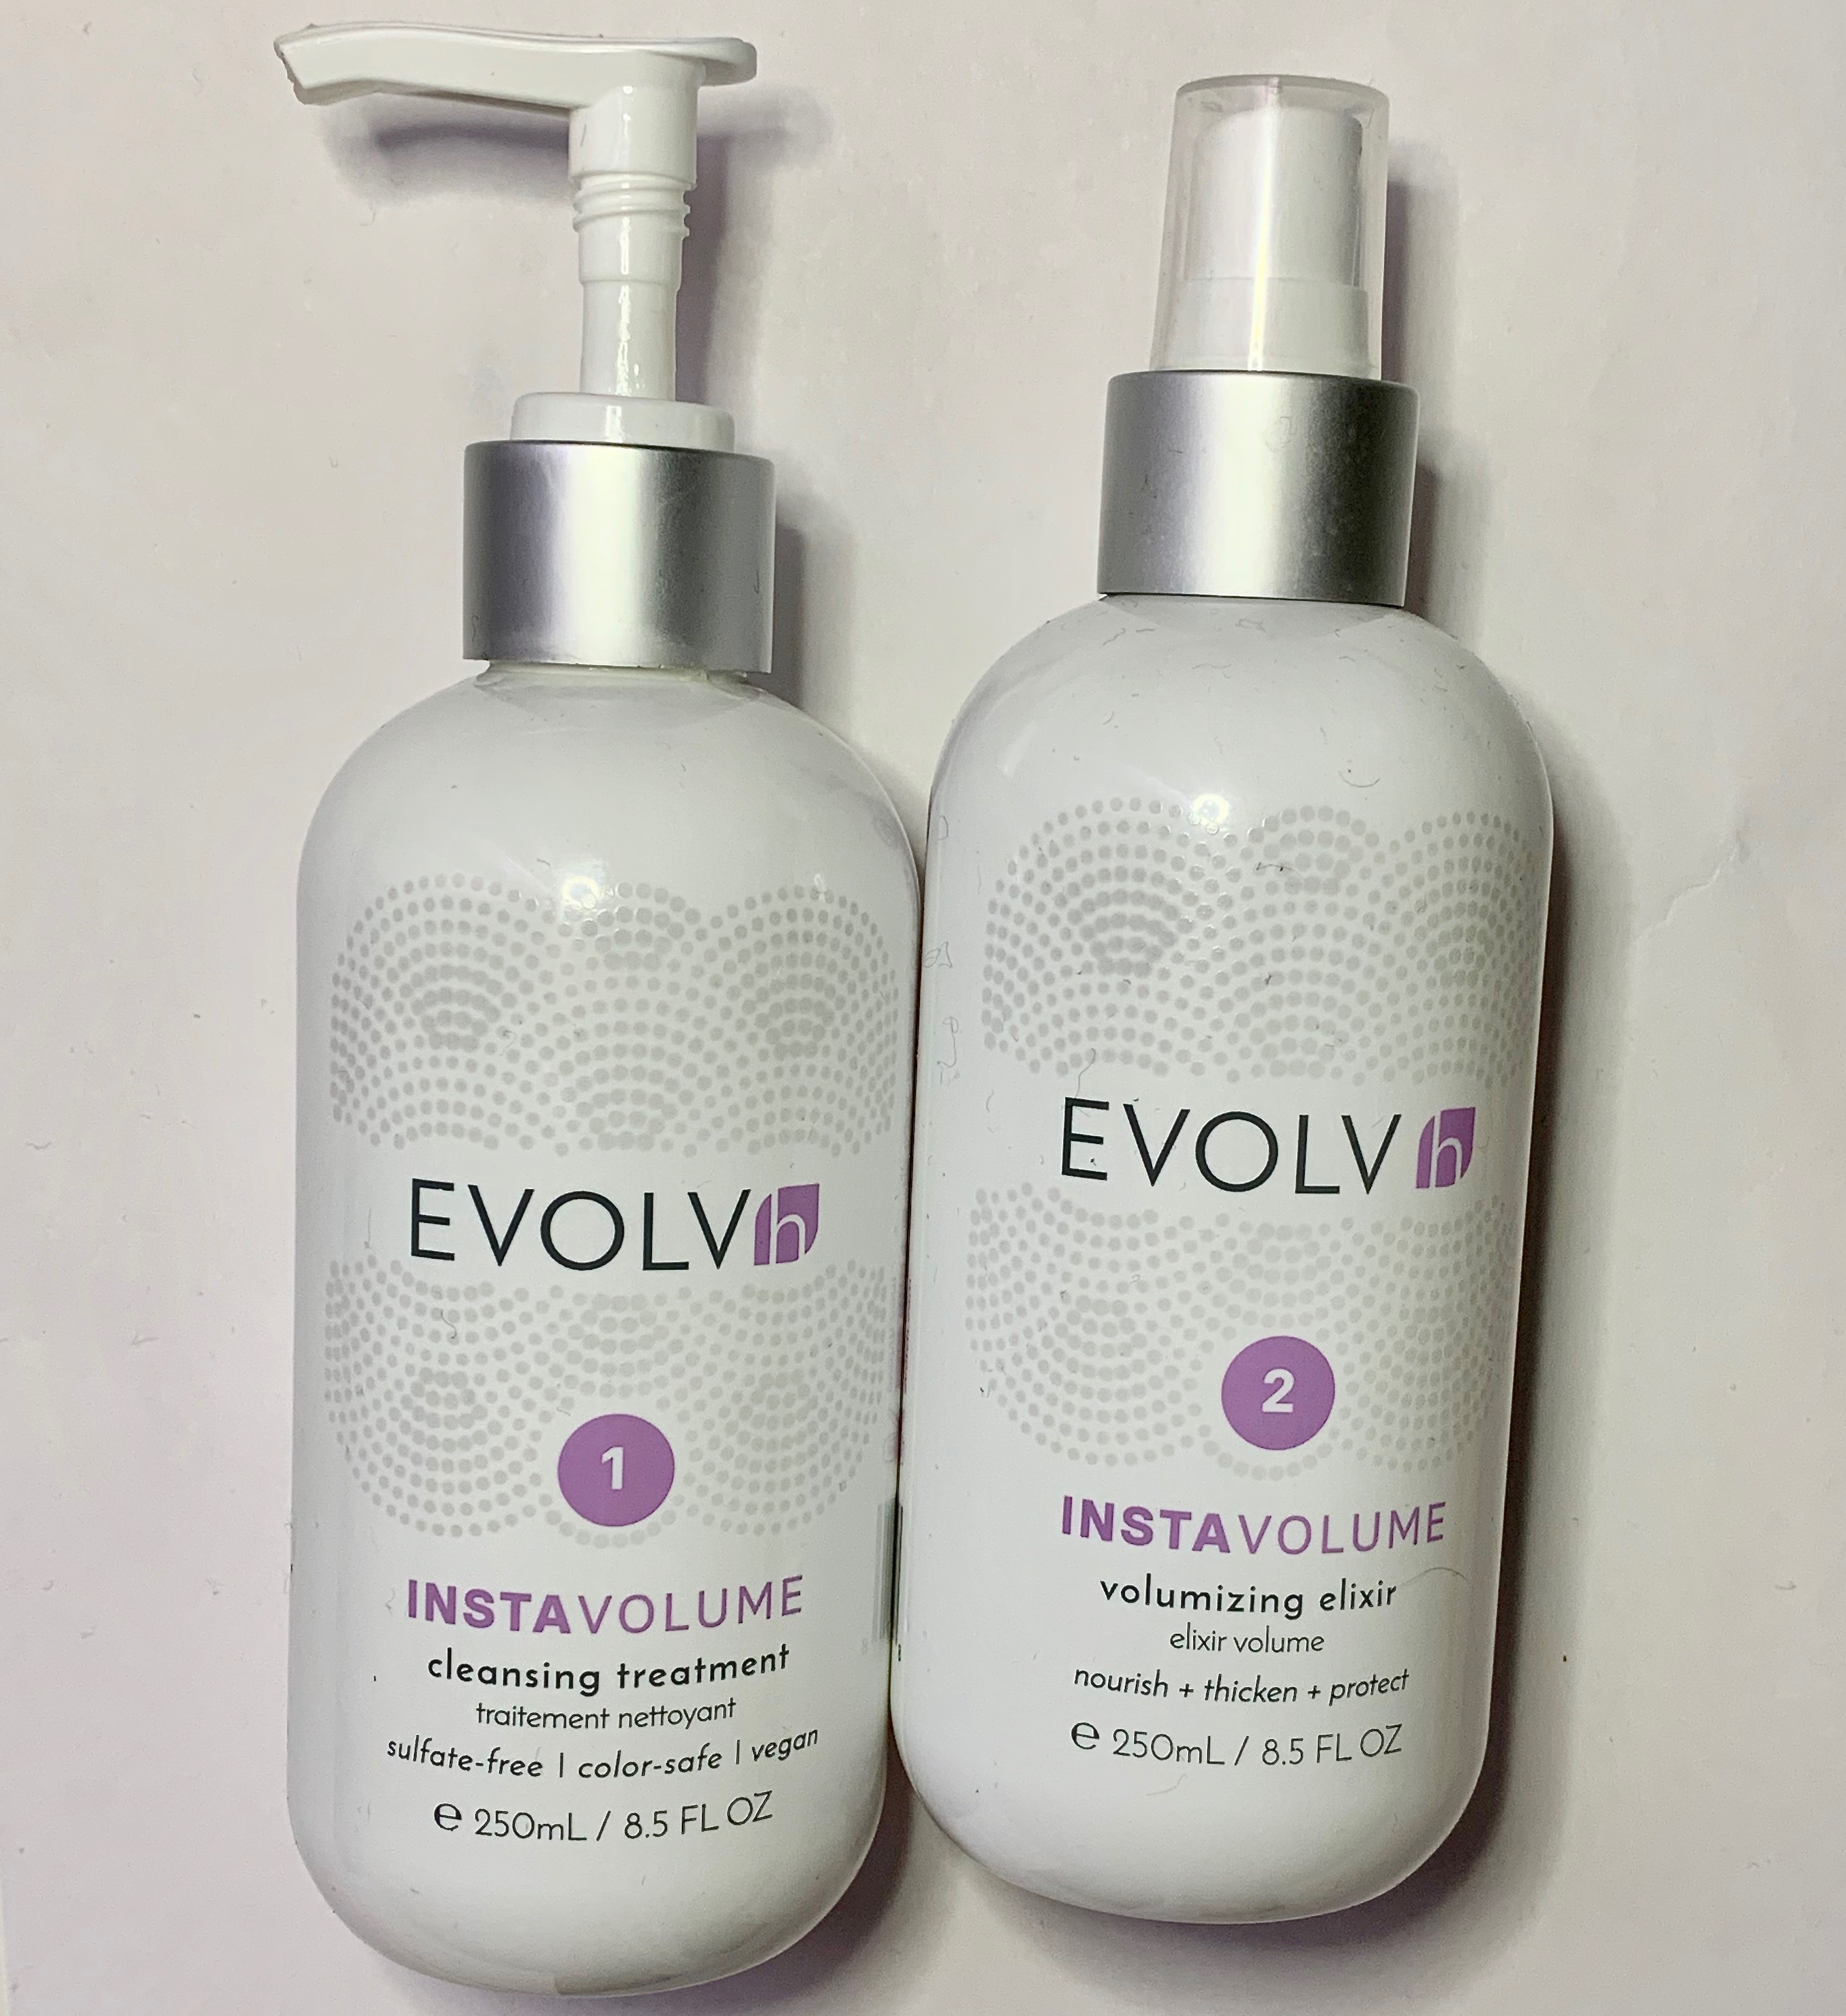 EVOLVh InstaVolume Cleansing Treatment & Volumizing Elixir